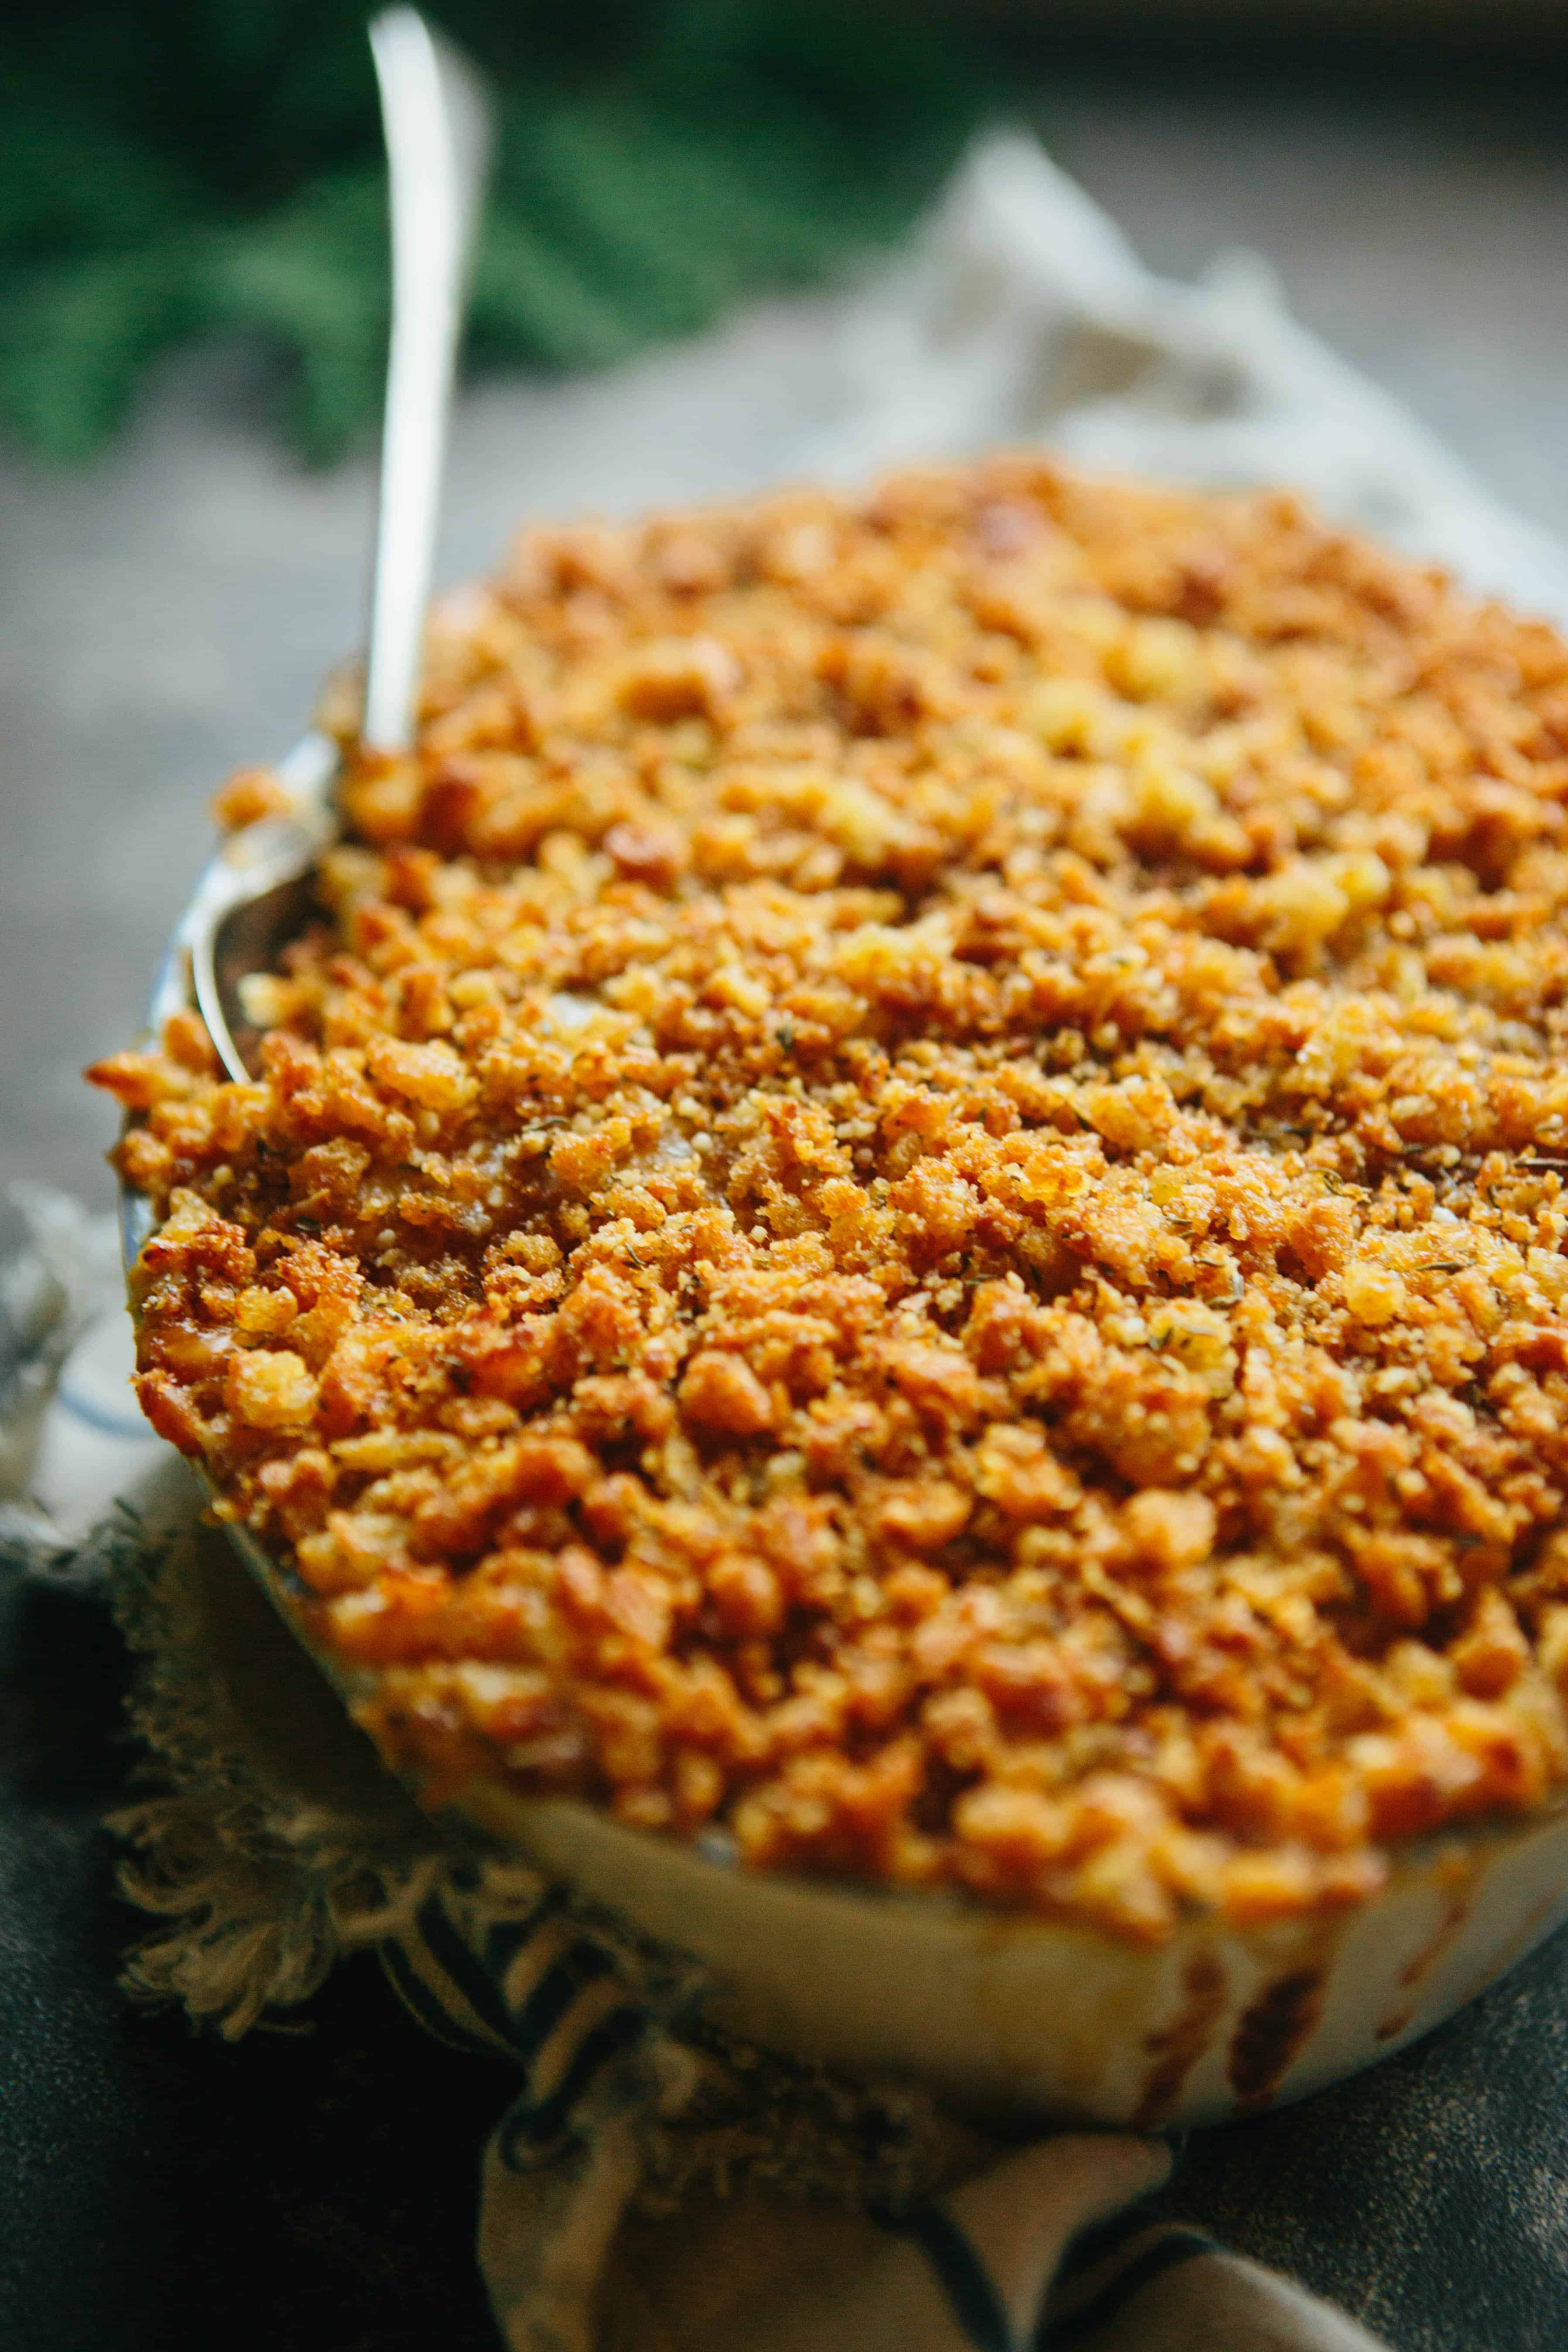 Close up of crunchy topped kale gratin in a baking dish, with a serving spoon.